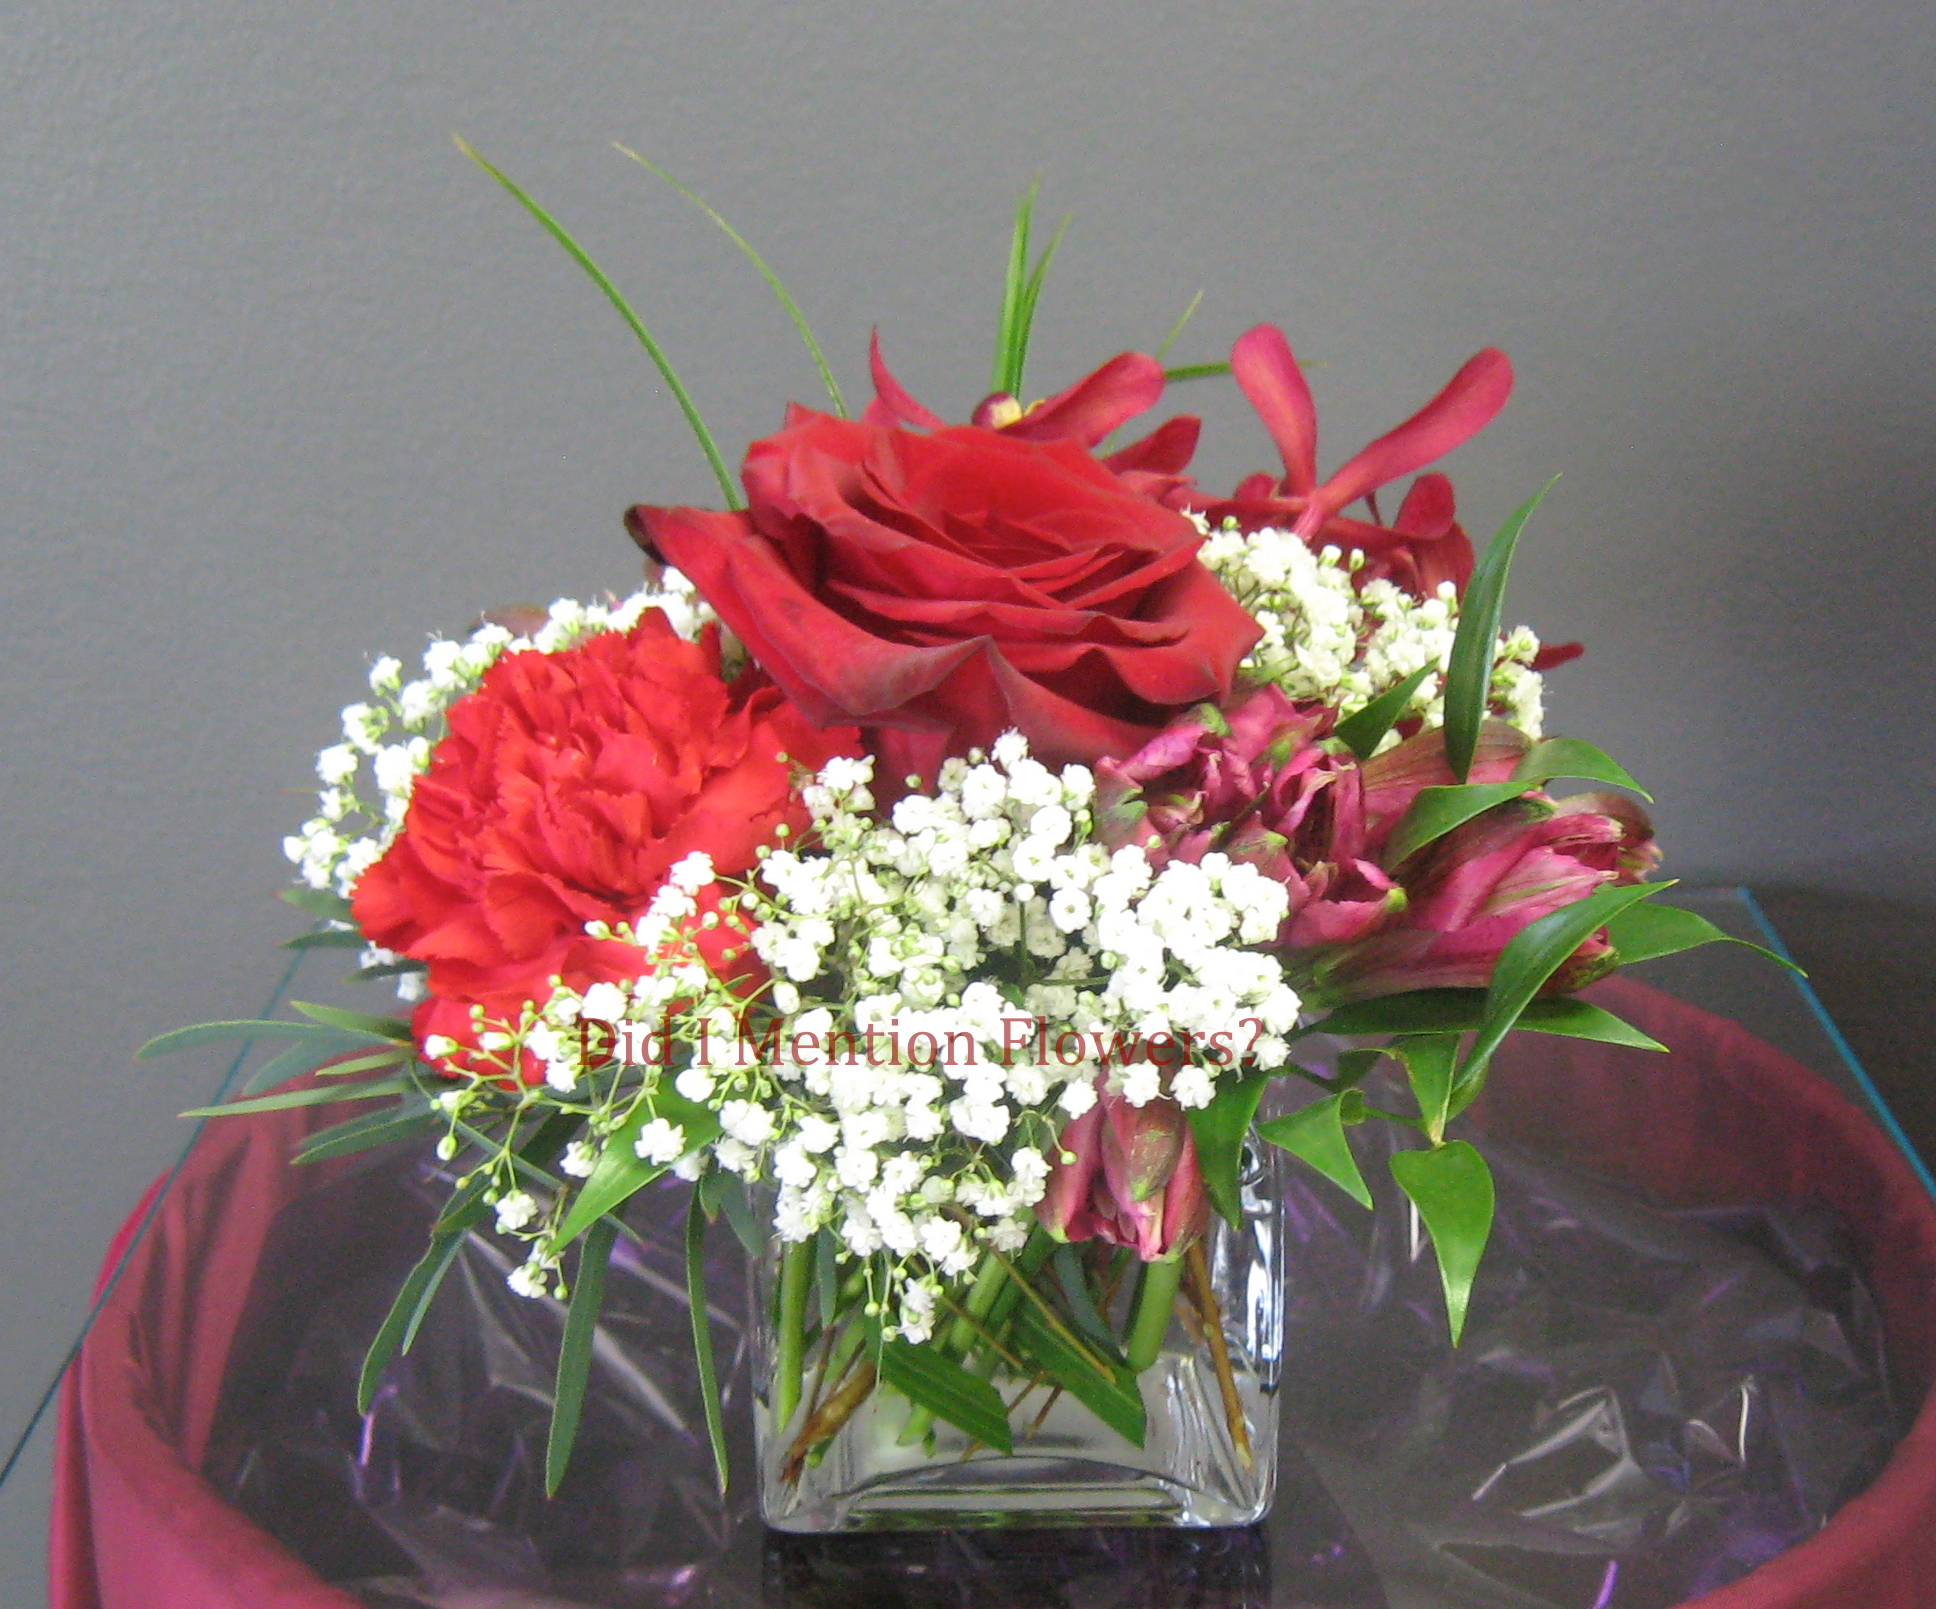 8 - Glass Vase Arrangement